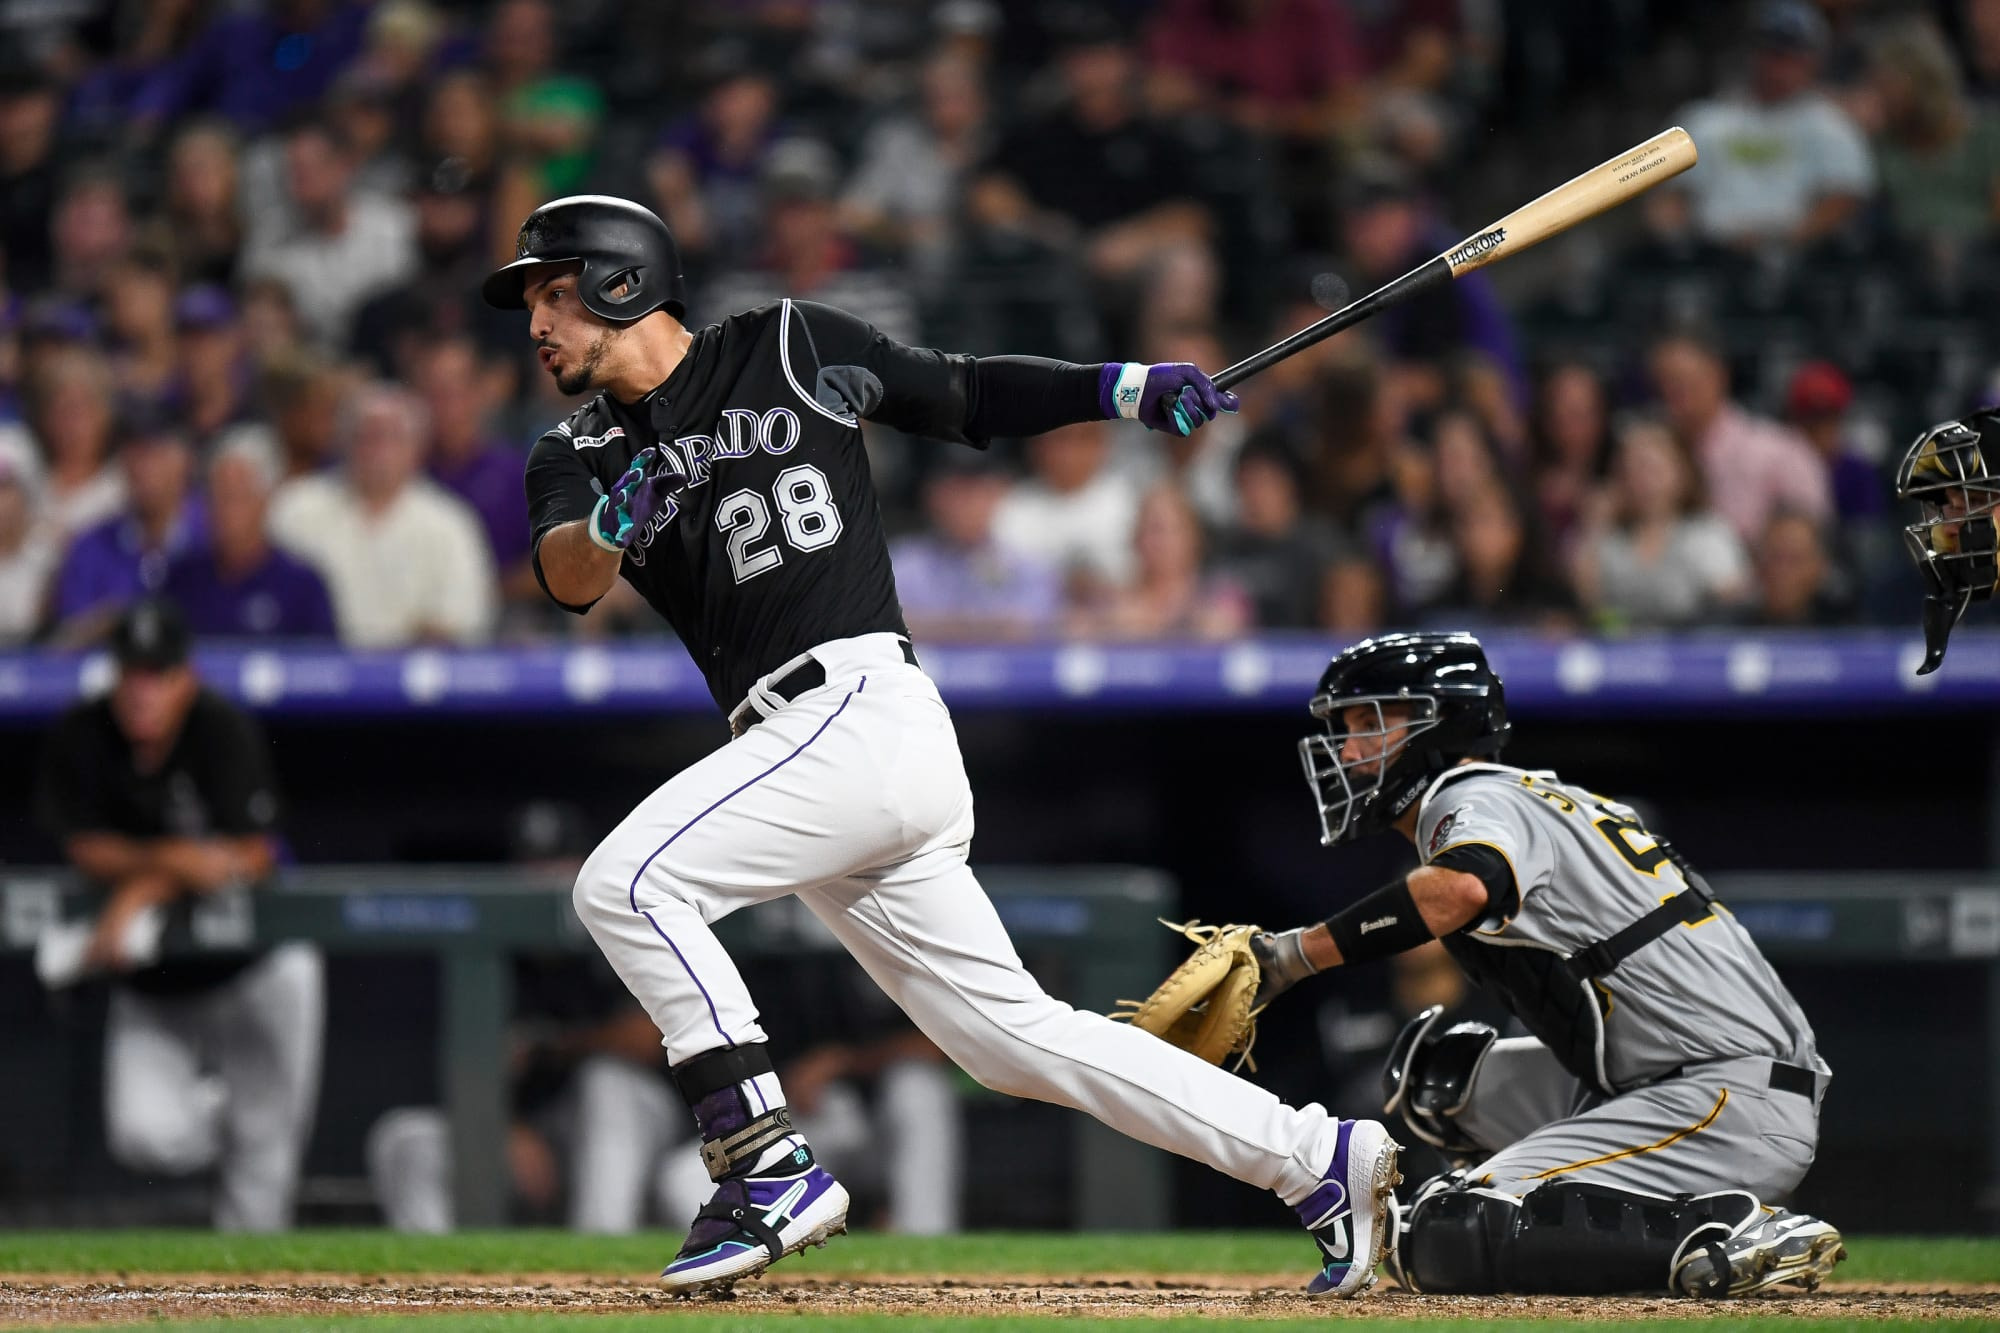 St. Louis-bound Nolan Arenado can't count on Coors Field advantage anymore